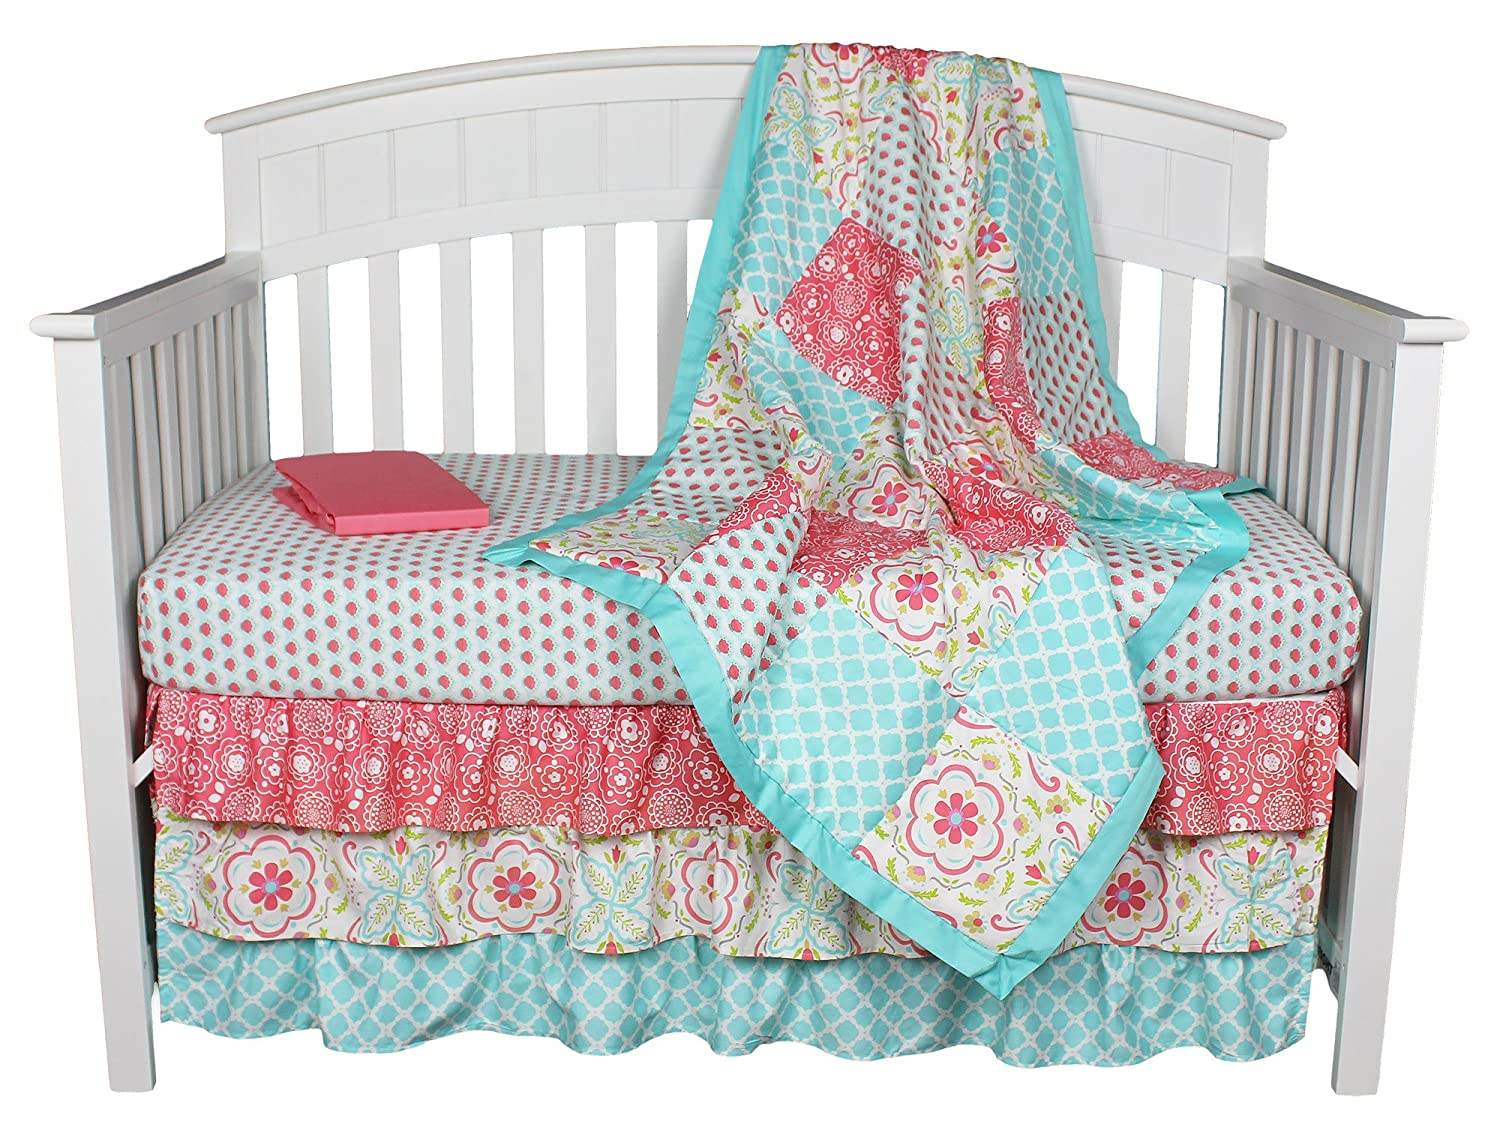 Gia Coral 4 Pc. Set Purple Baby Bedding, Zoe 4-in-1 Bedding Set by The Peanut Shell